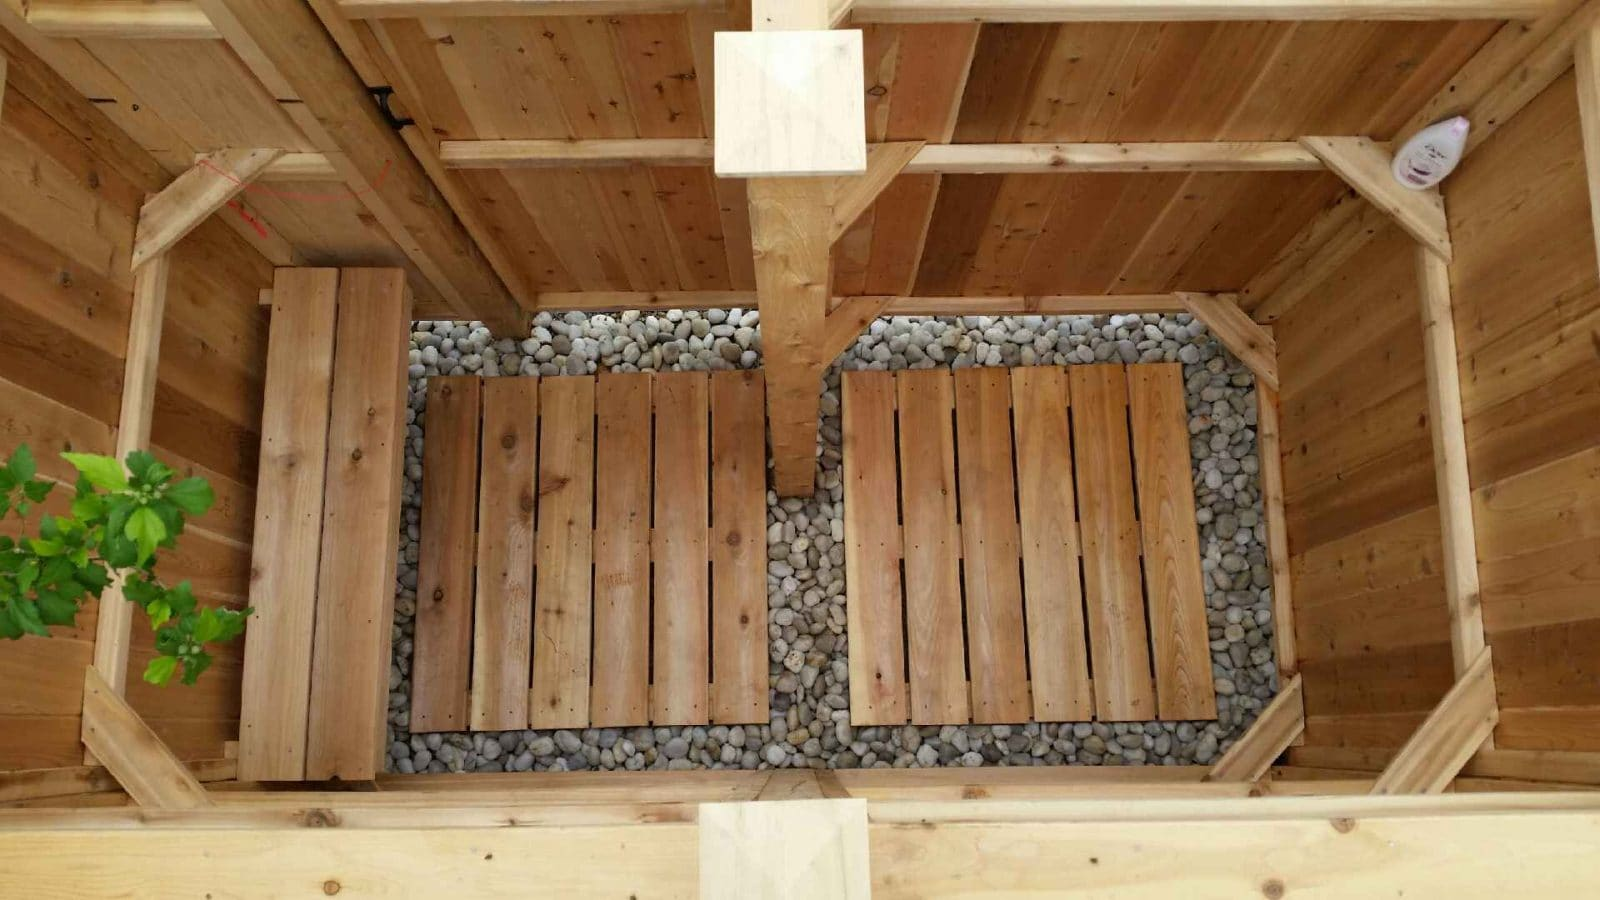 Drainage For Your Outdoor Shower, Outdoor Shower Drainage Pans